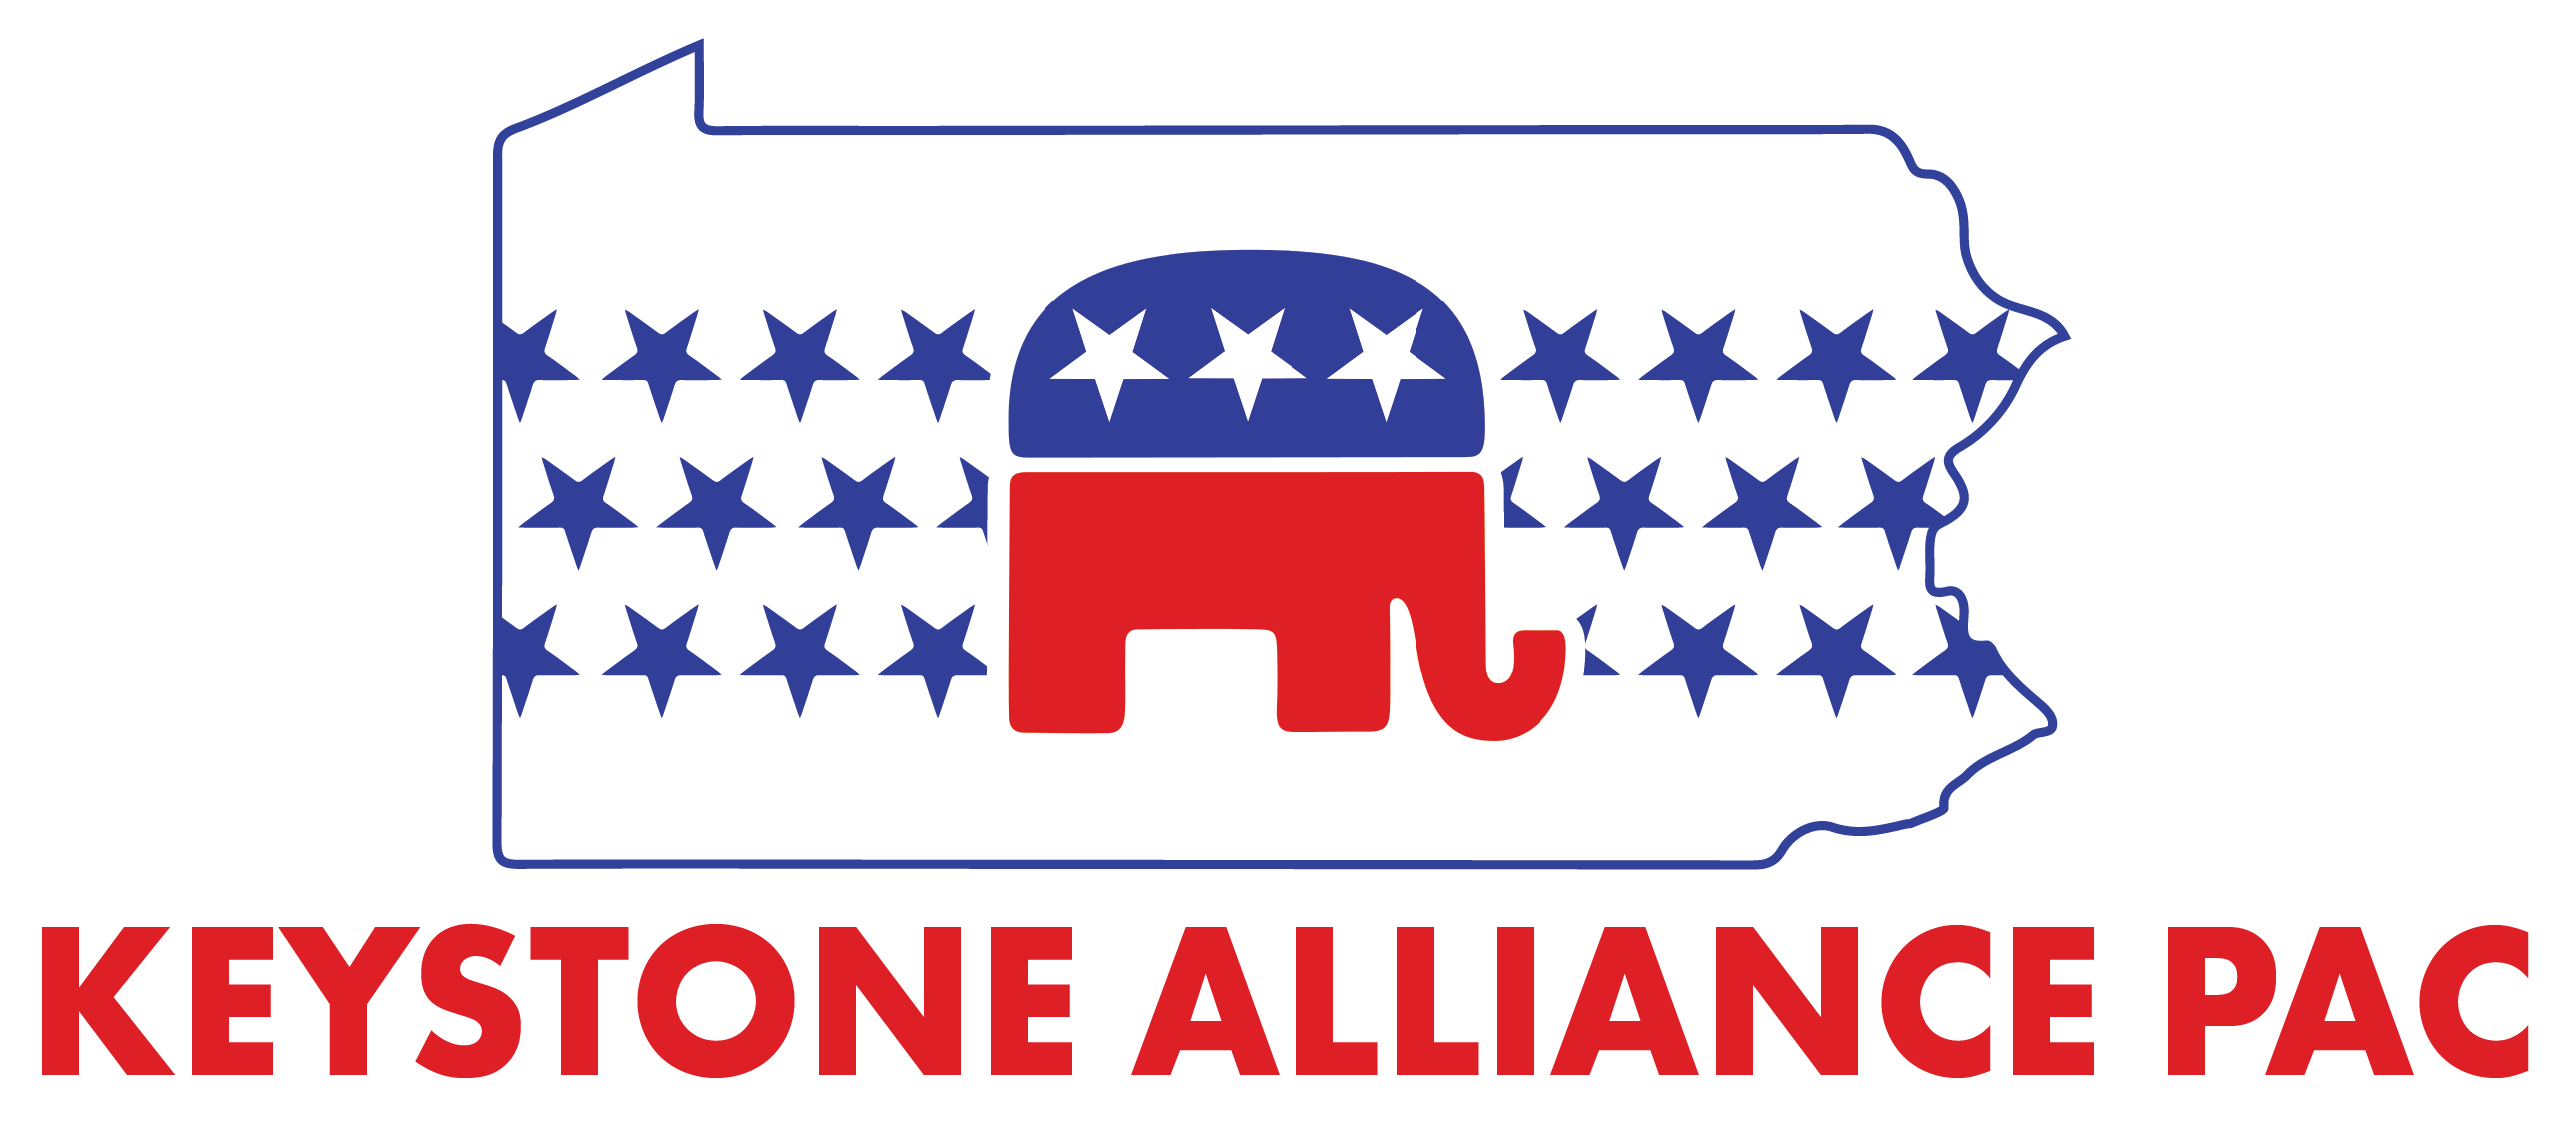 Keystone Alliance PAC logo, get involved with the PAC today